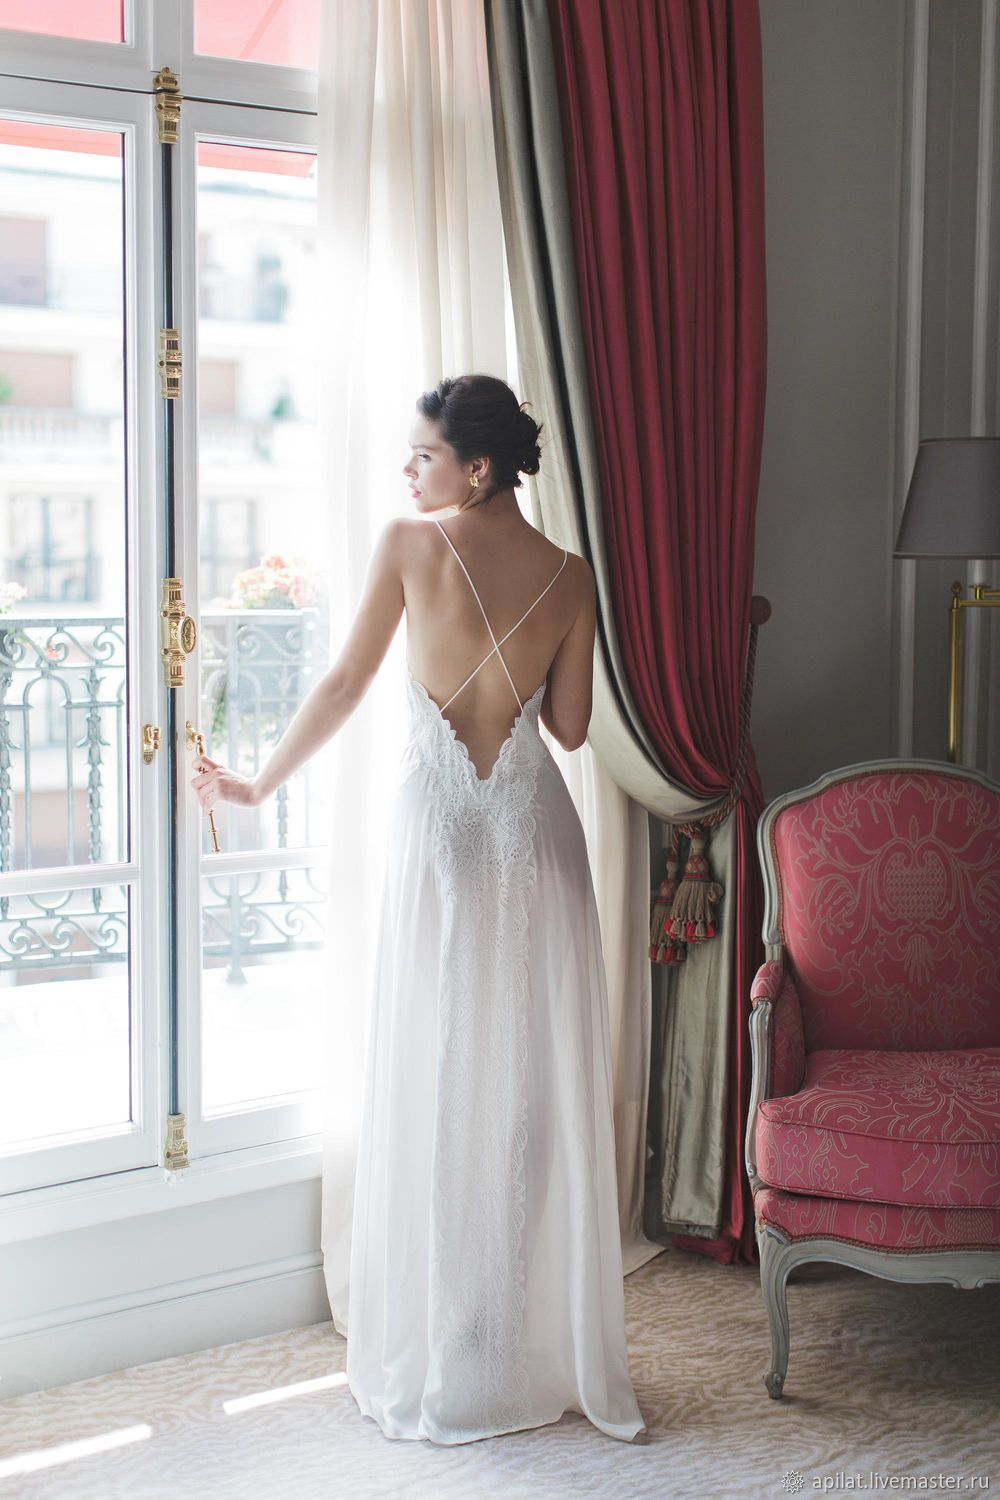 Copy of Long Silk Bridal Nightgown With Open Back and Lace F12 ...